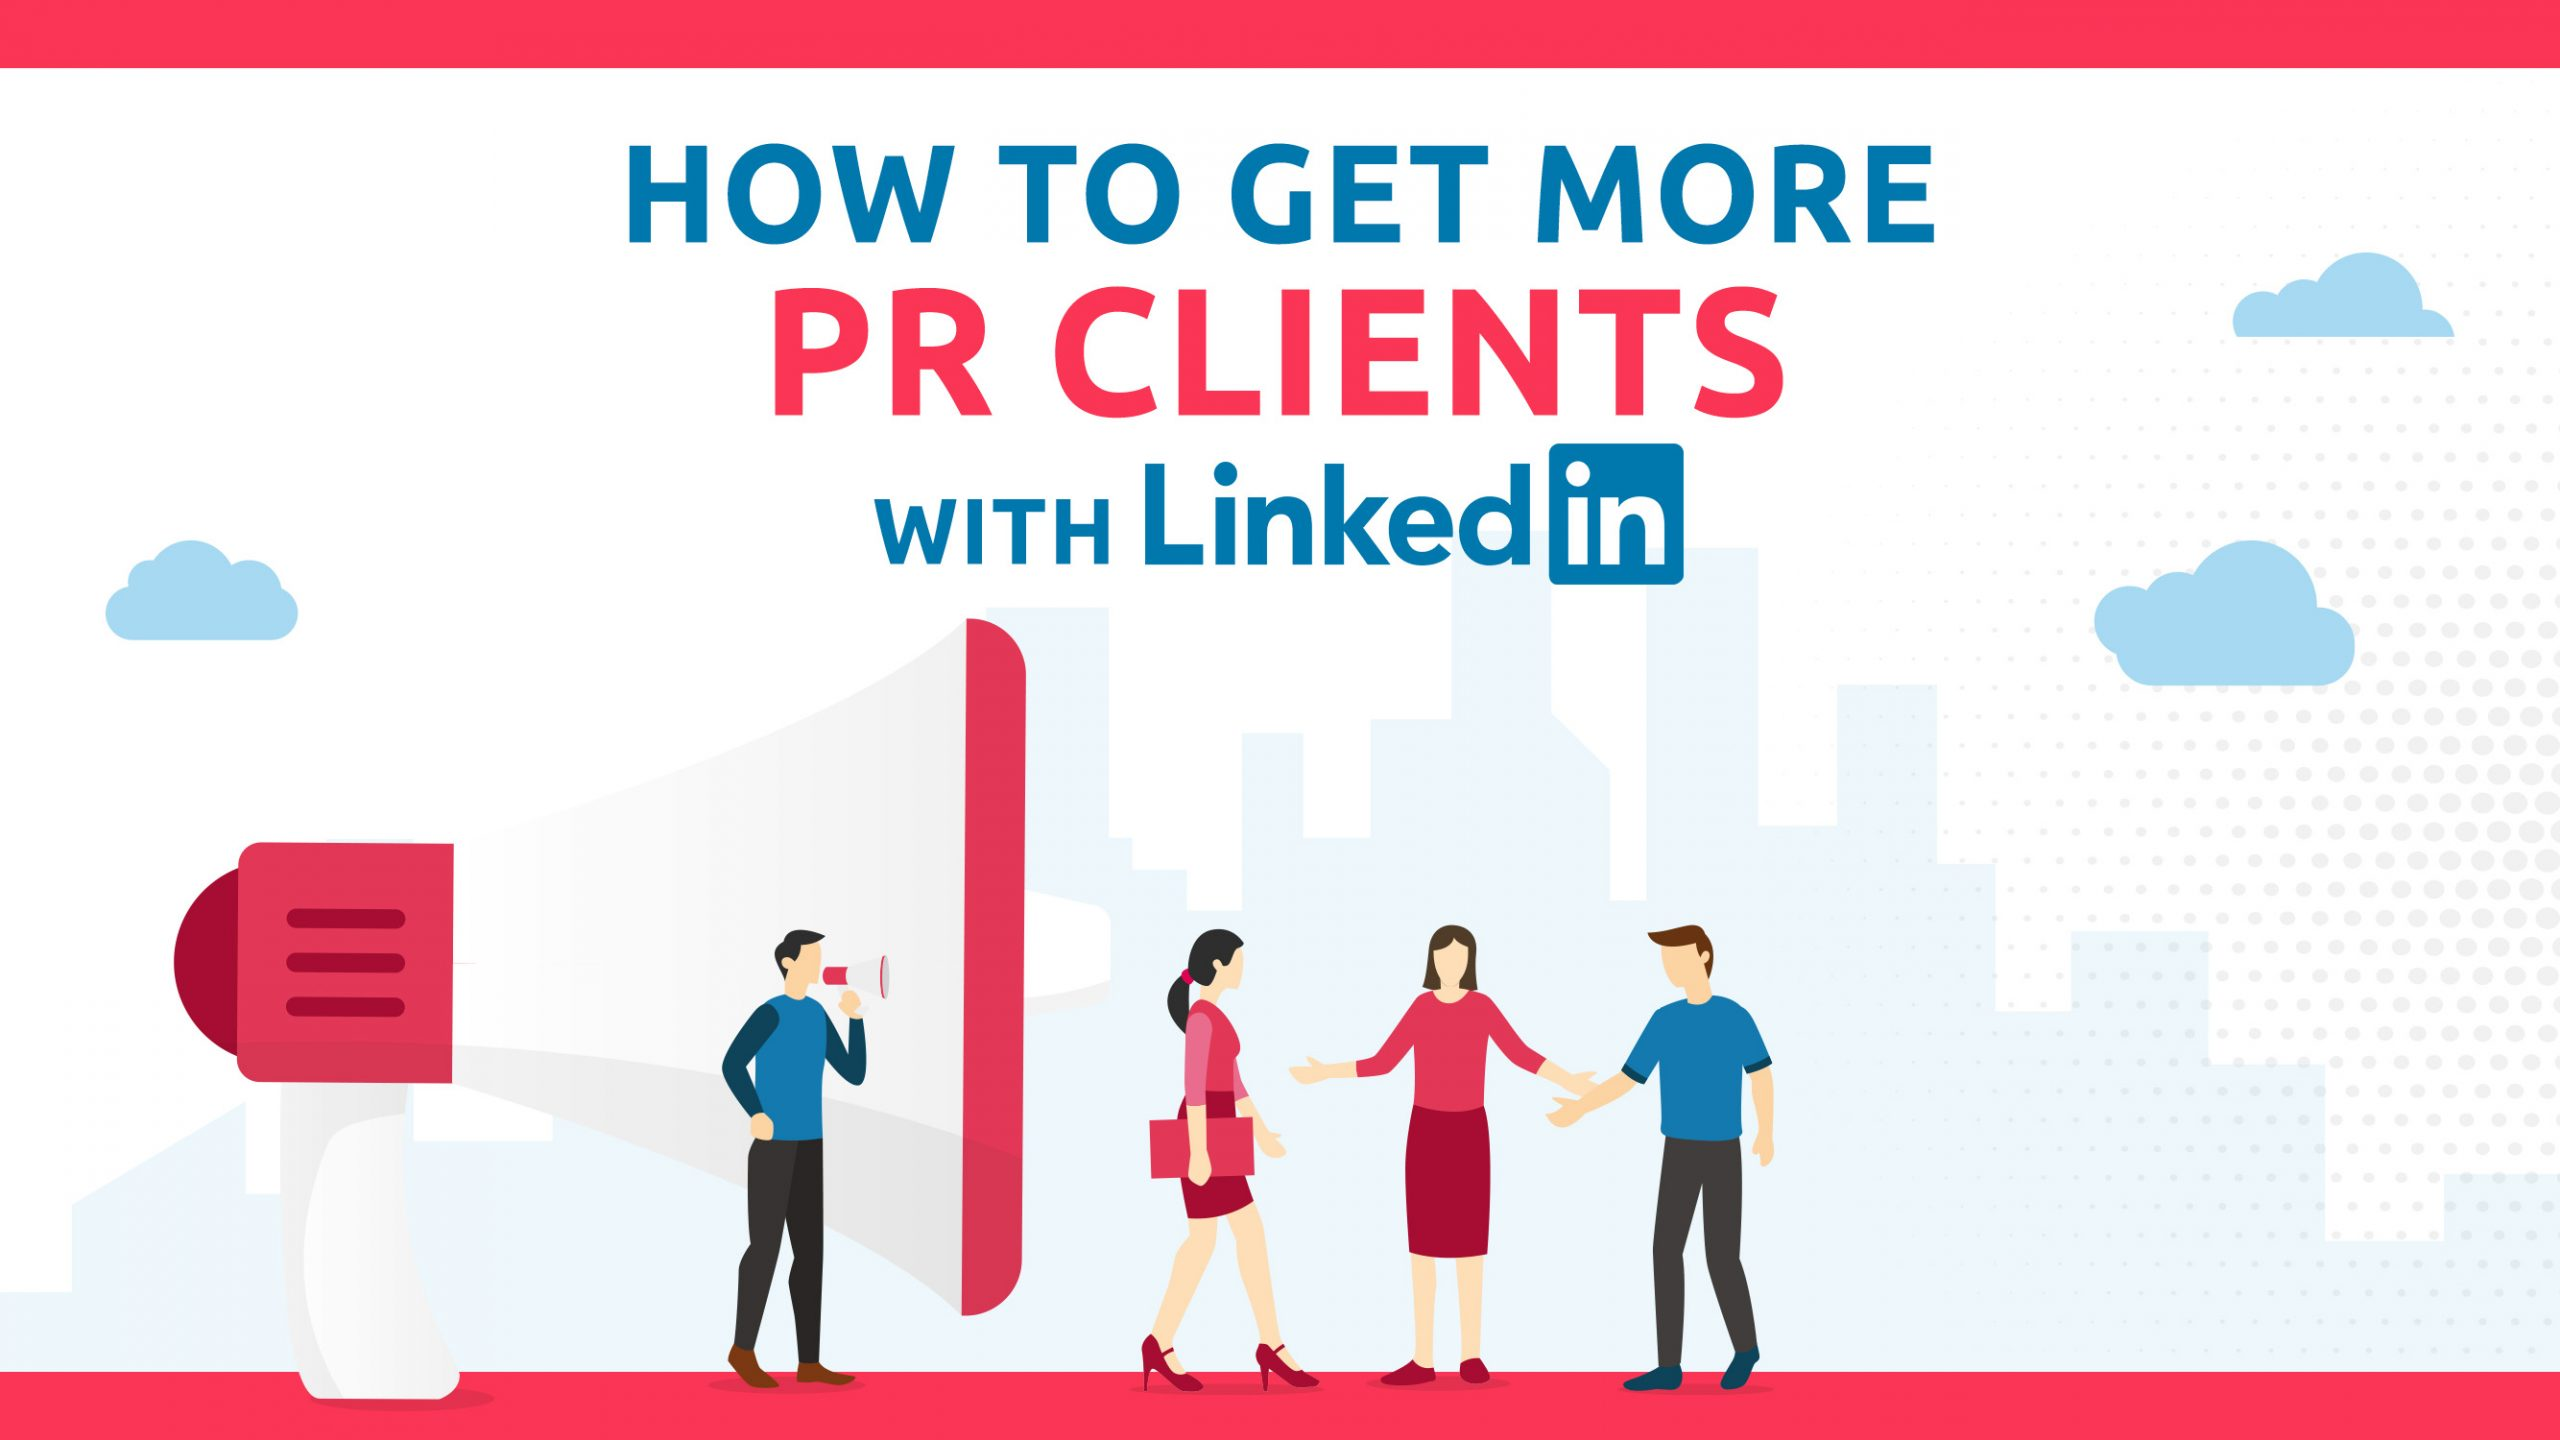 How To Find More PR Clients With LinkedIn